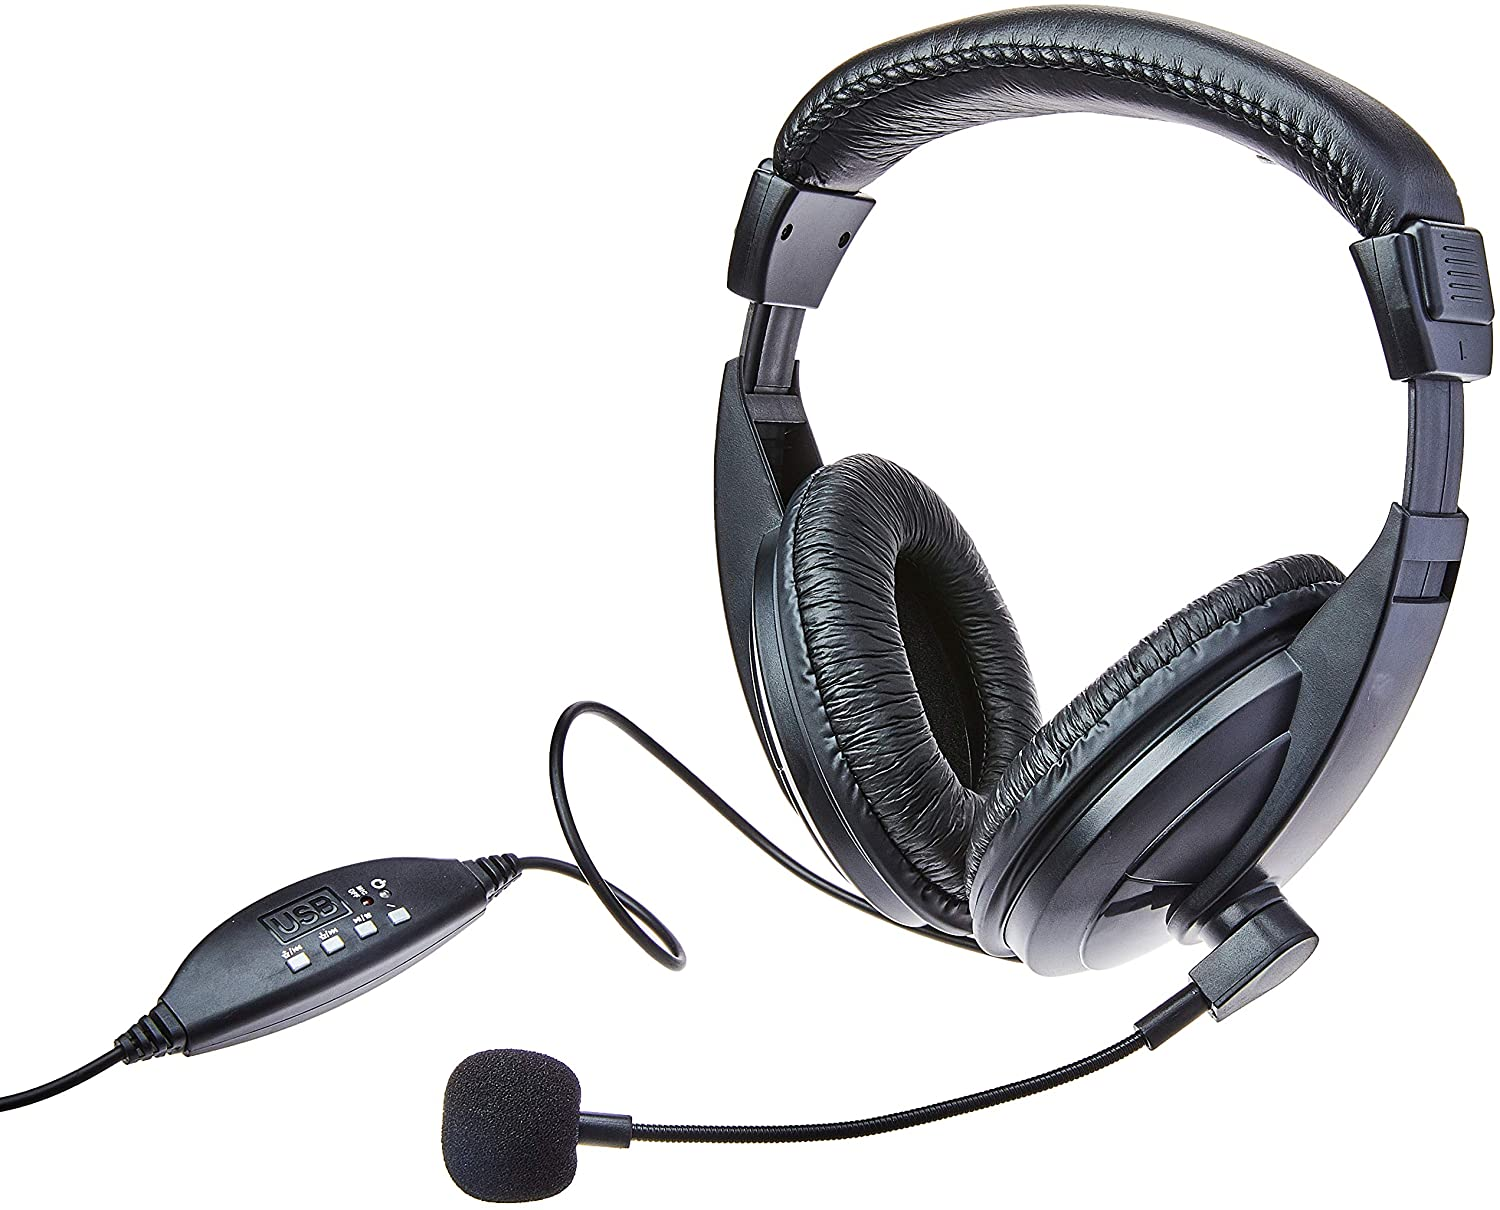 Fone Headset Usb Preto Giant Ph245 Multilaser